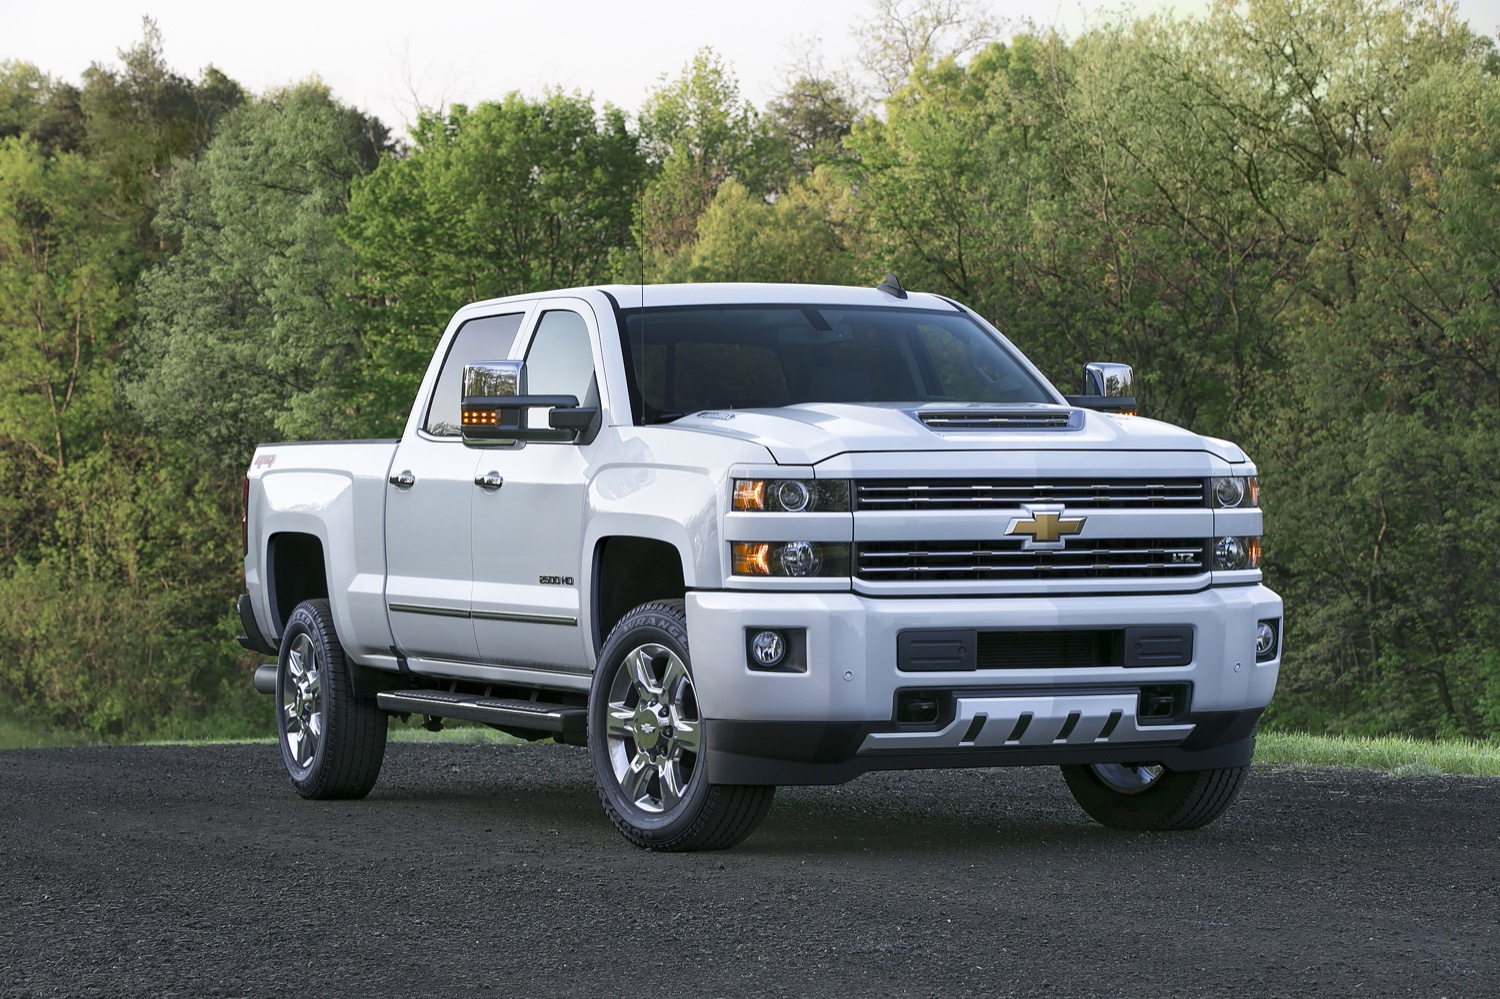 2017 Trucks Worth Waiting For >> 8 Most Anticipated Pickup Trucks For 2017 And 3 Bonus Ones From The